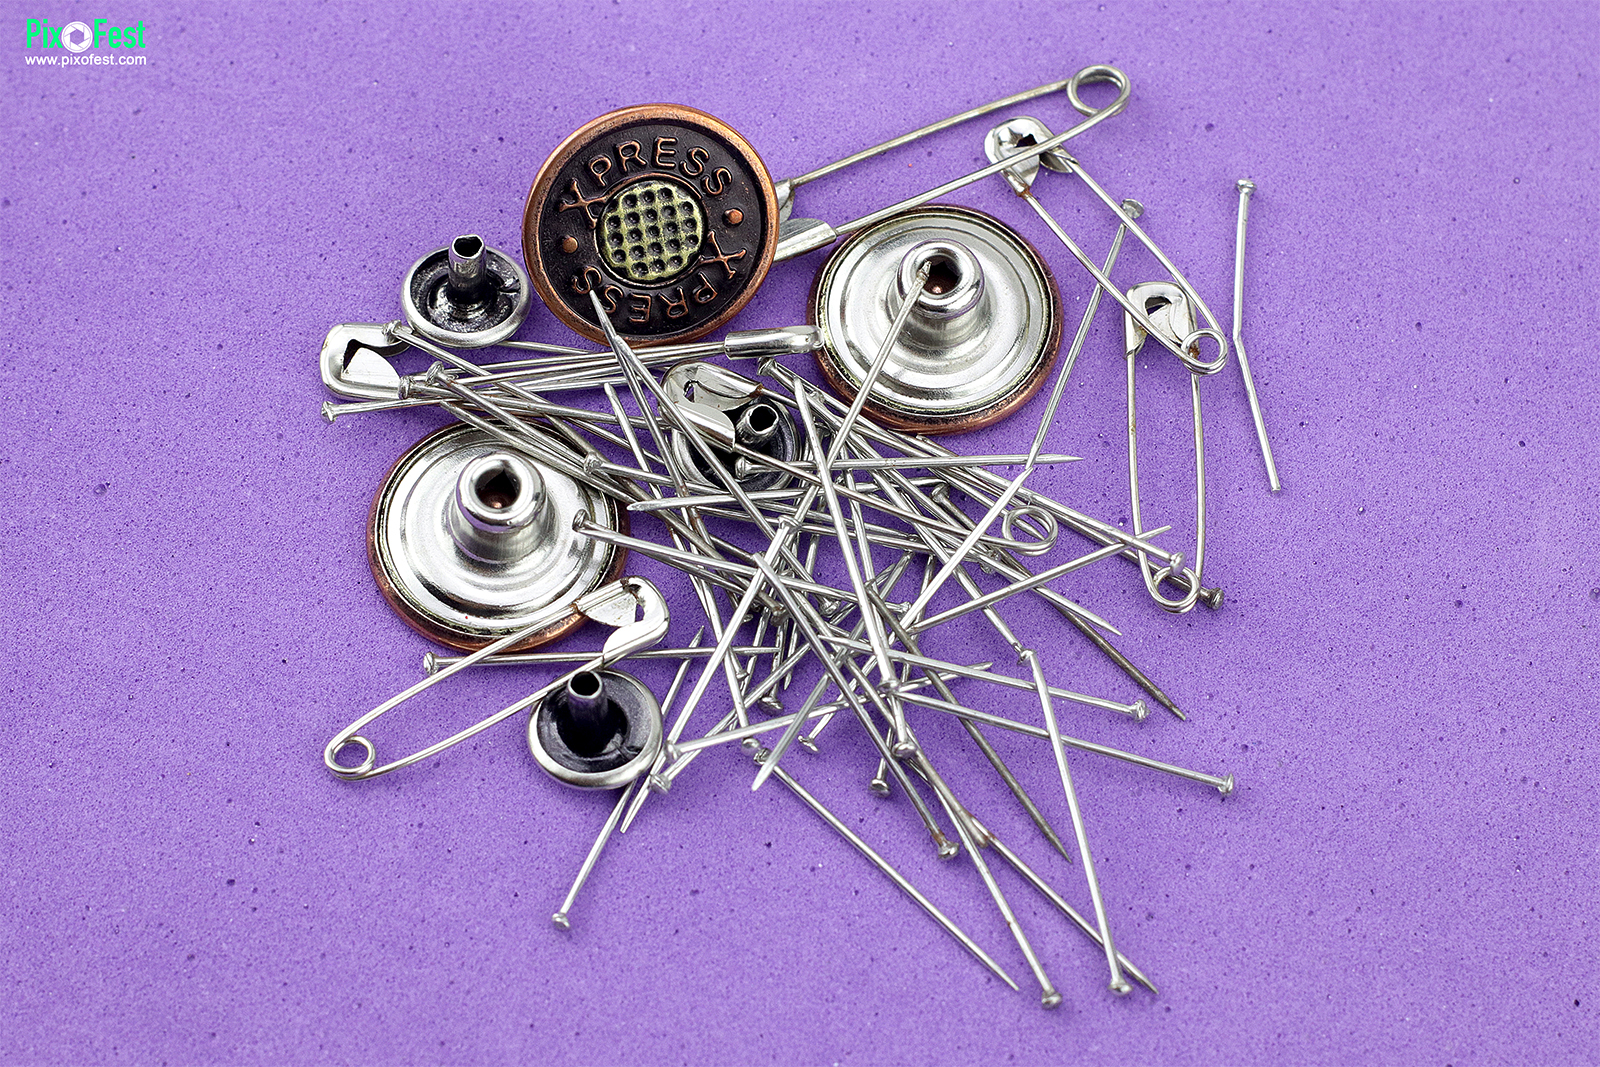 Pin and Button_01, Pin, Clip, safety pin, jeans botton, metal buttons